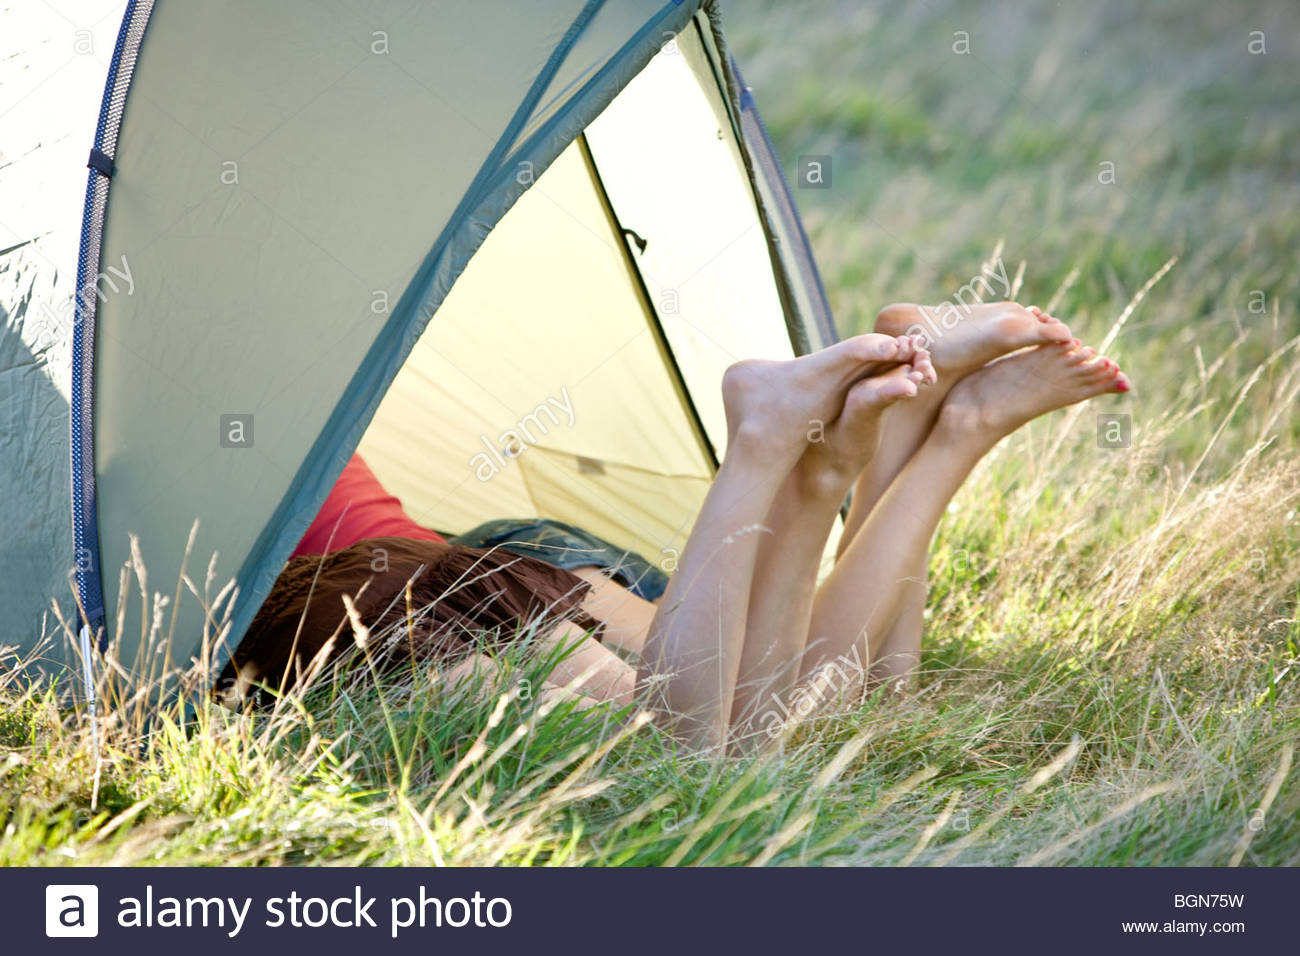 Two young women with their legs sticking out of a tent - Stock Image